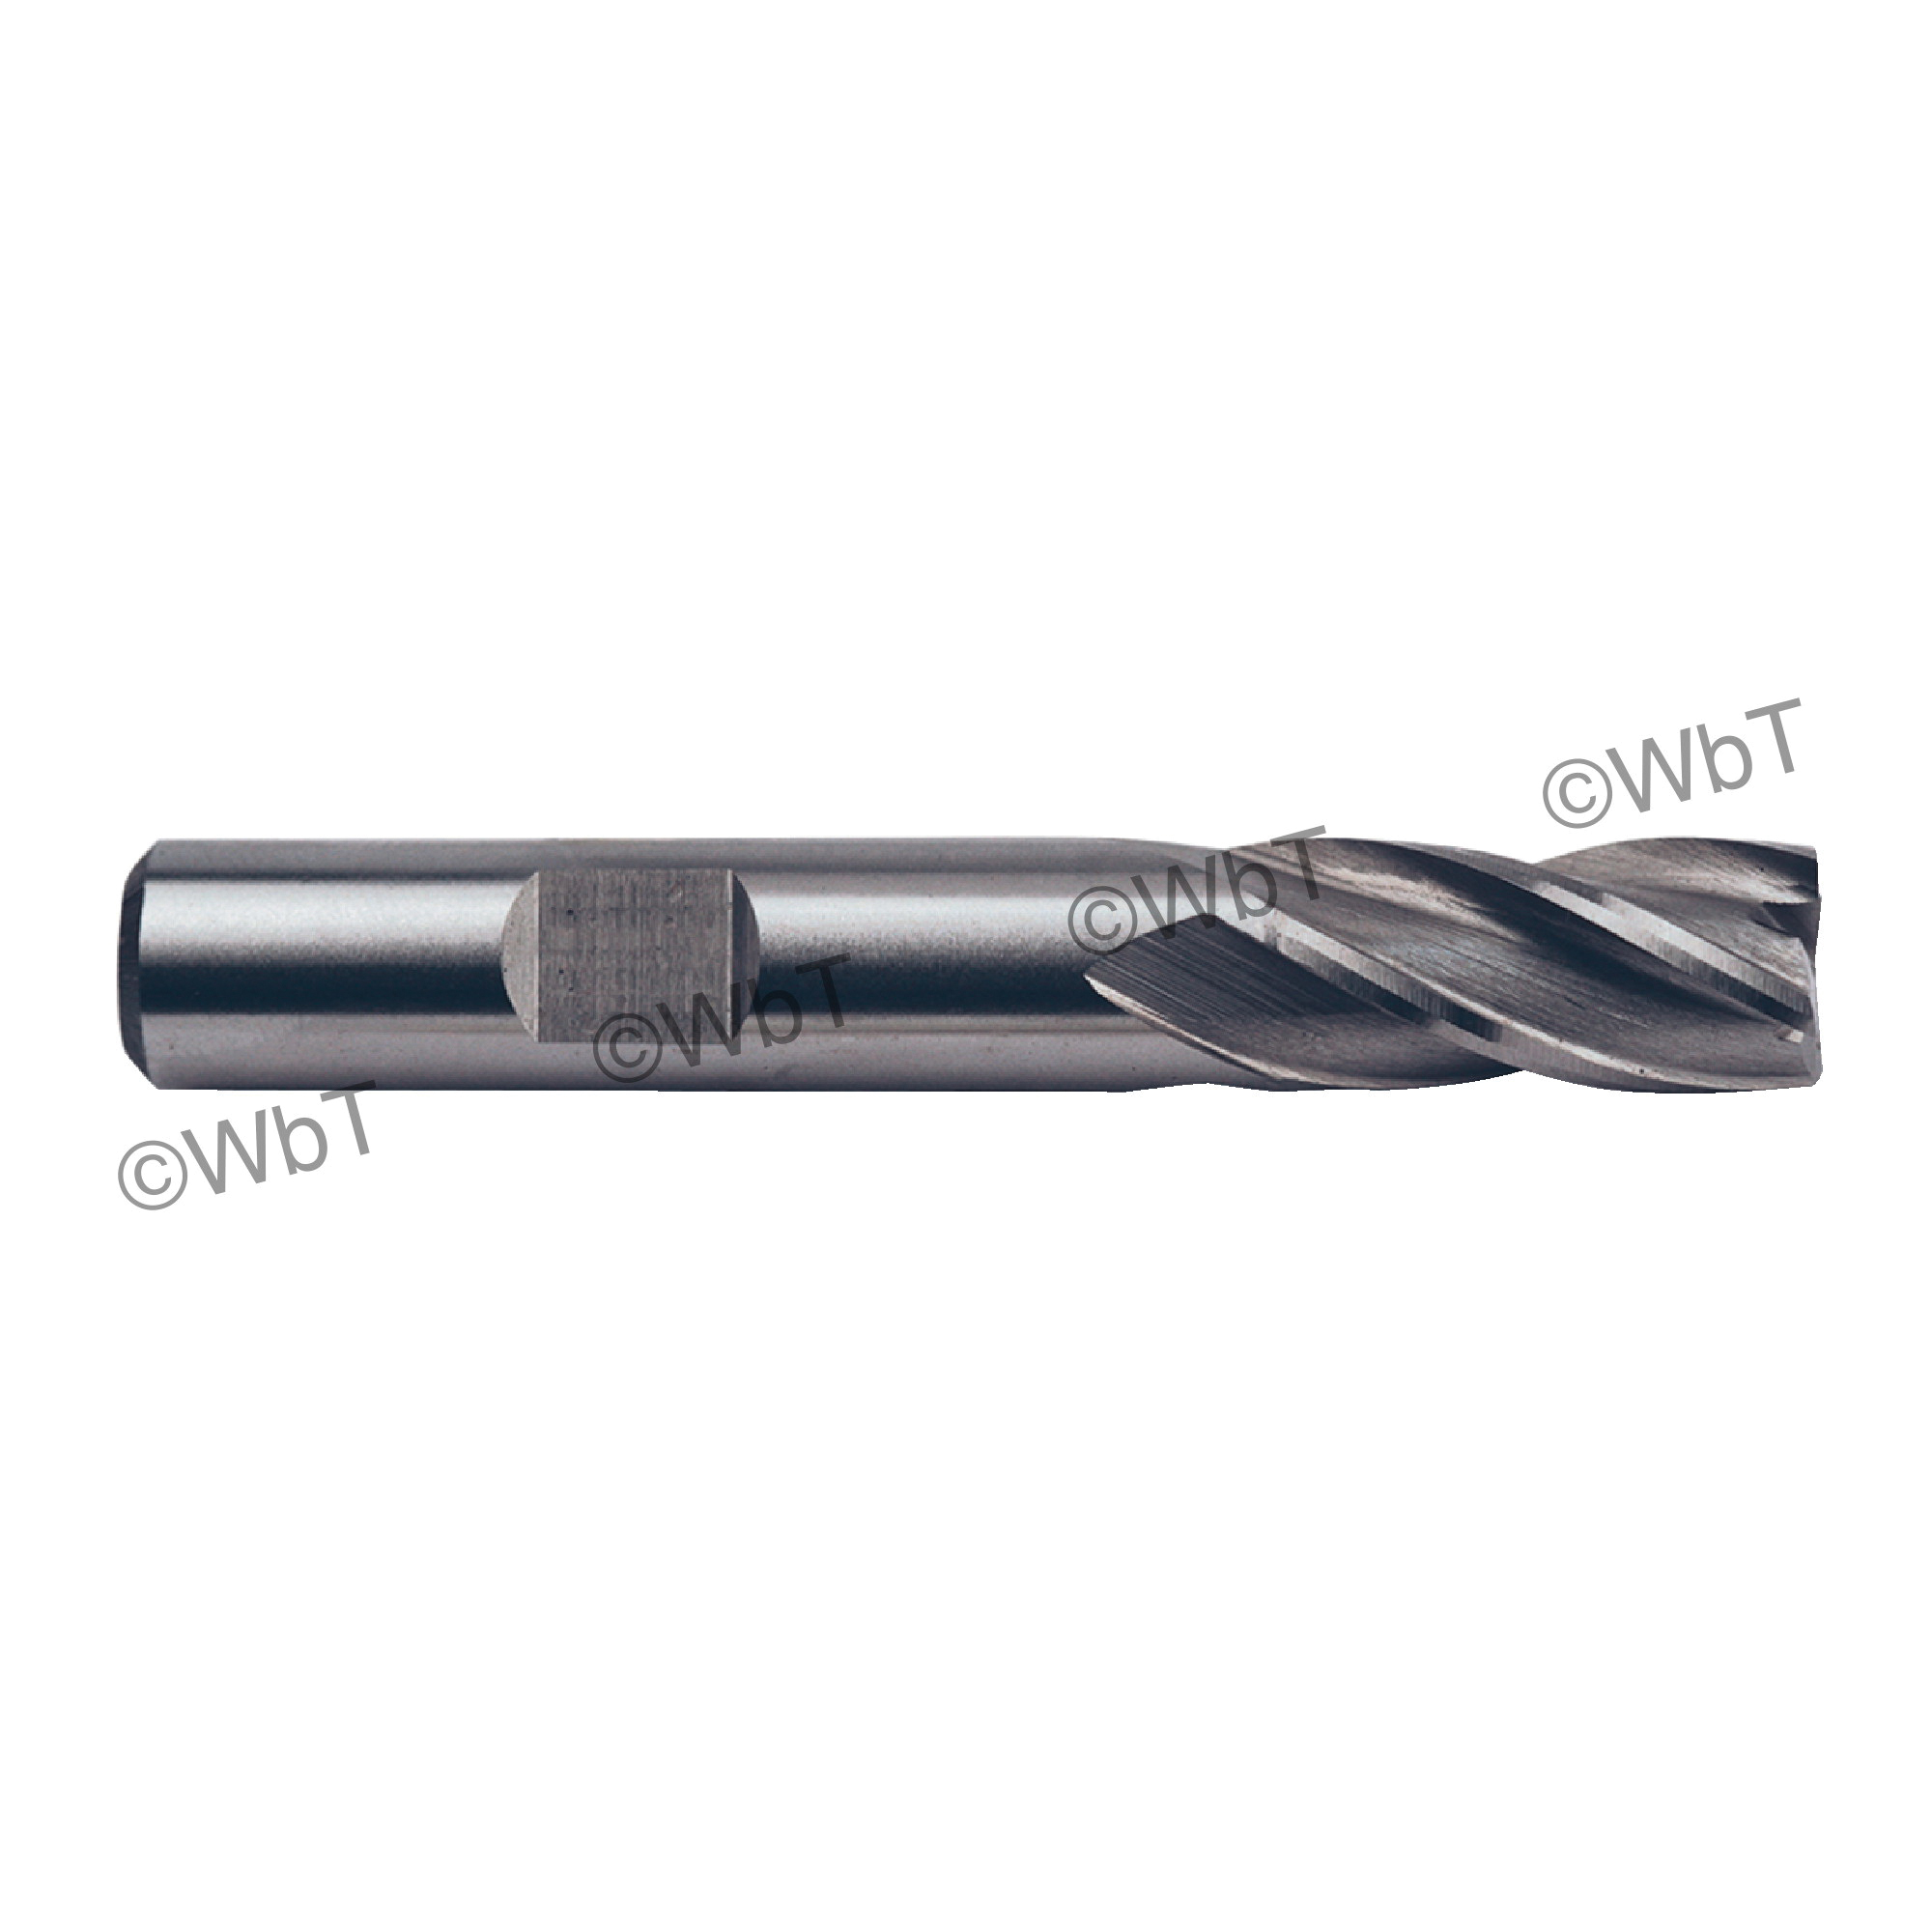 TTC 08-015-140 D5 Center Cutting Standard Length Single End Mill, 5/8 in Dia Cutter, 1-5/8 in Length of Cut, 4 Flutes, 5/8 in Dia Shank, 3-3/4 in OAL, Bright